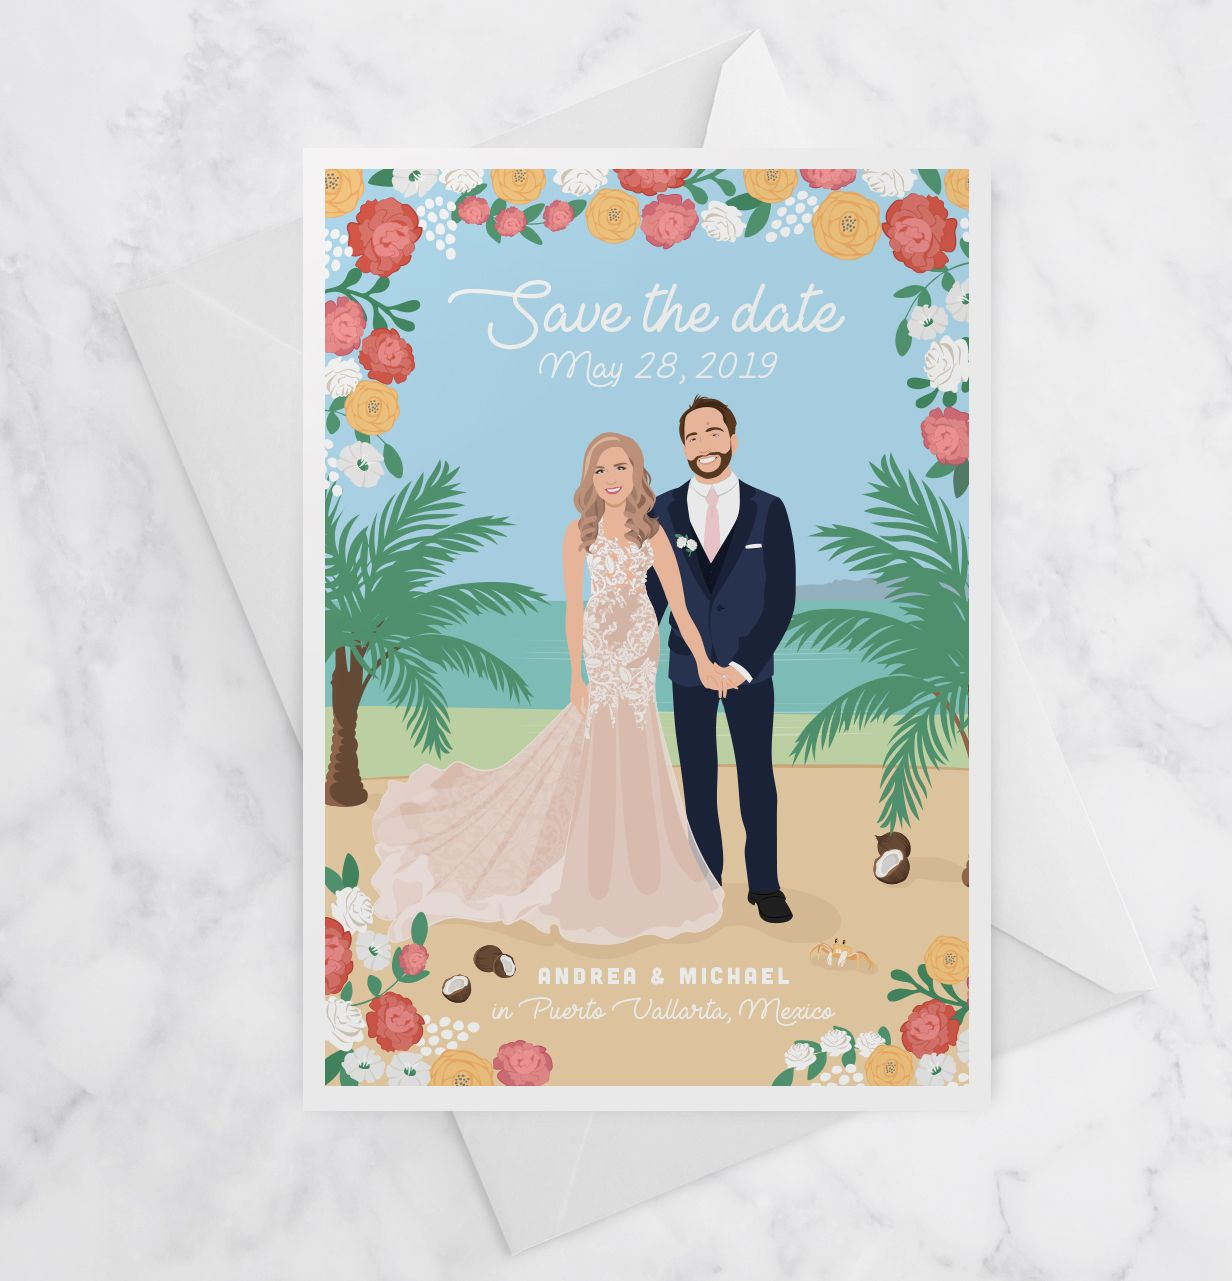 Wedding decorations at the beach january 2019 Destination Wedding Save the Date Cards  Destination wedding